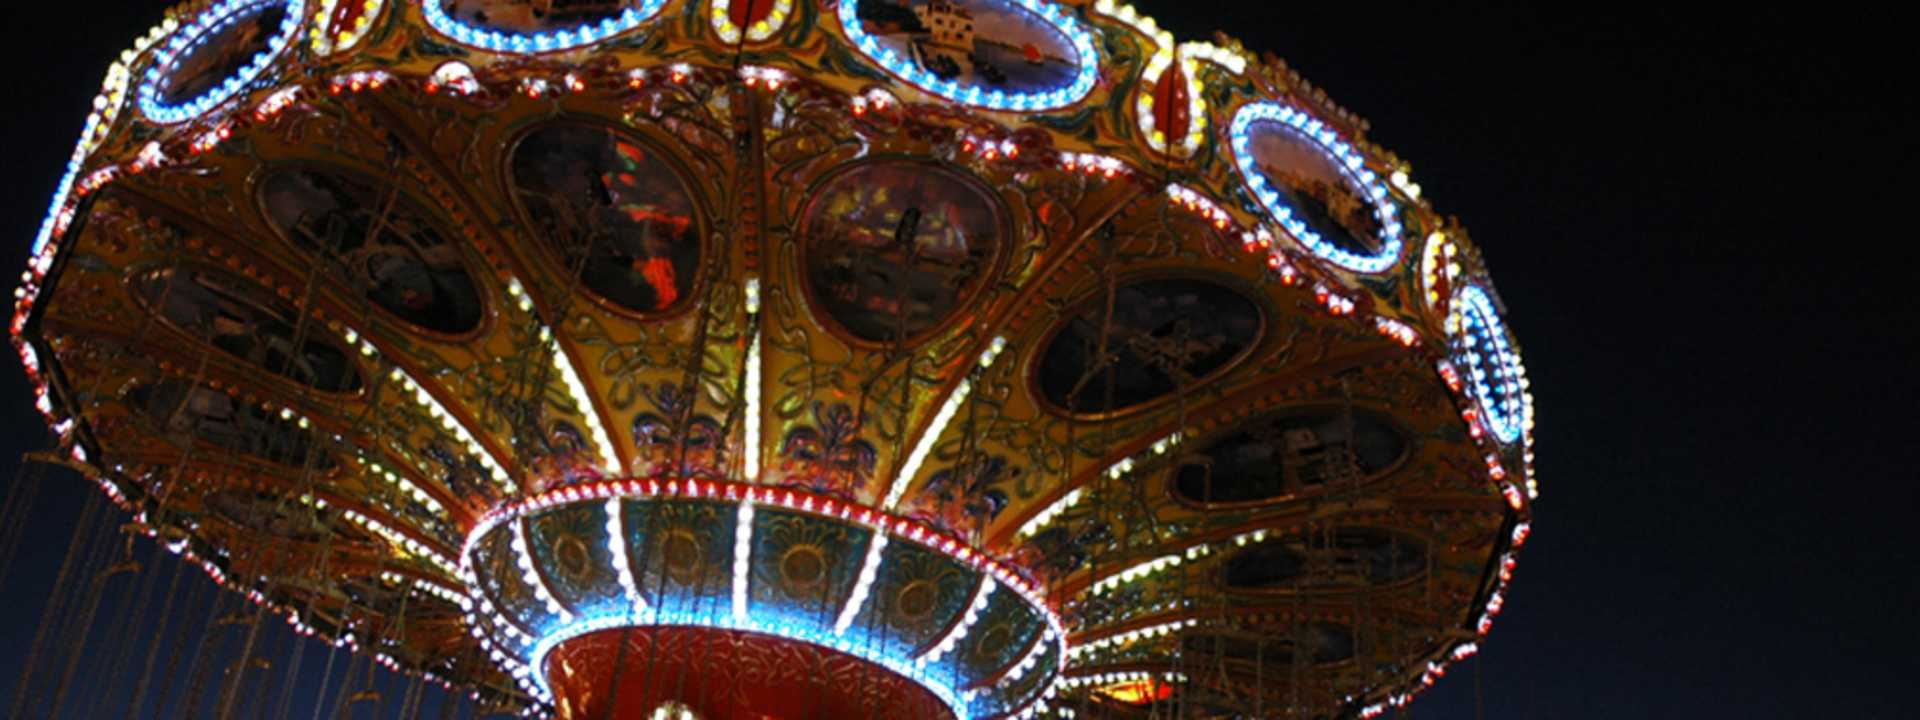 Ride the midway or see some animals New Mexico's Fairs and Festivals